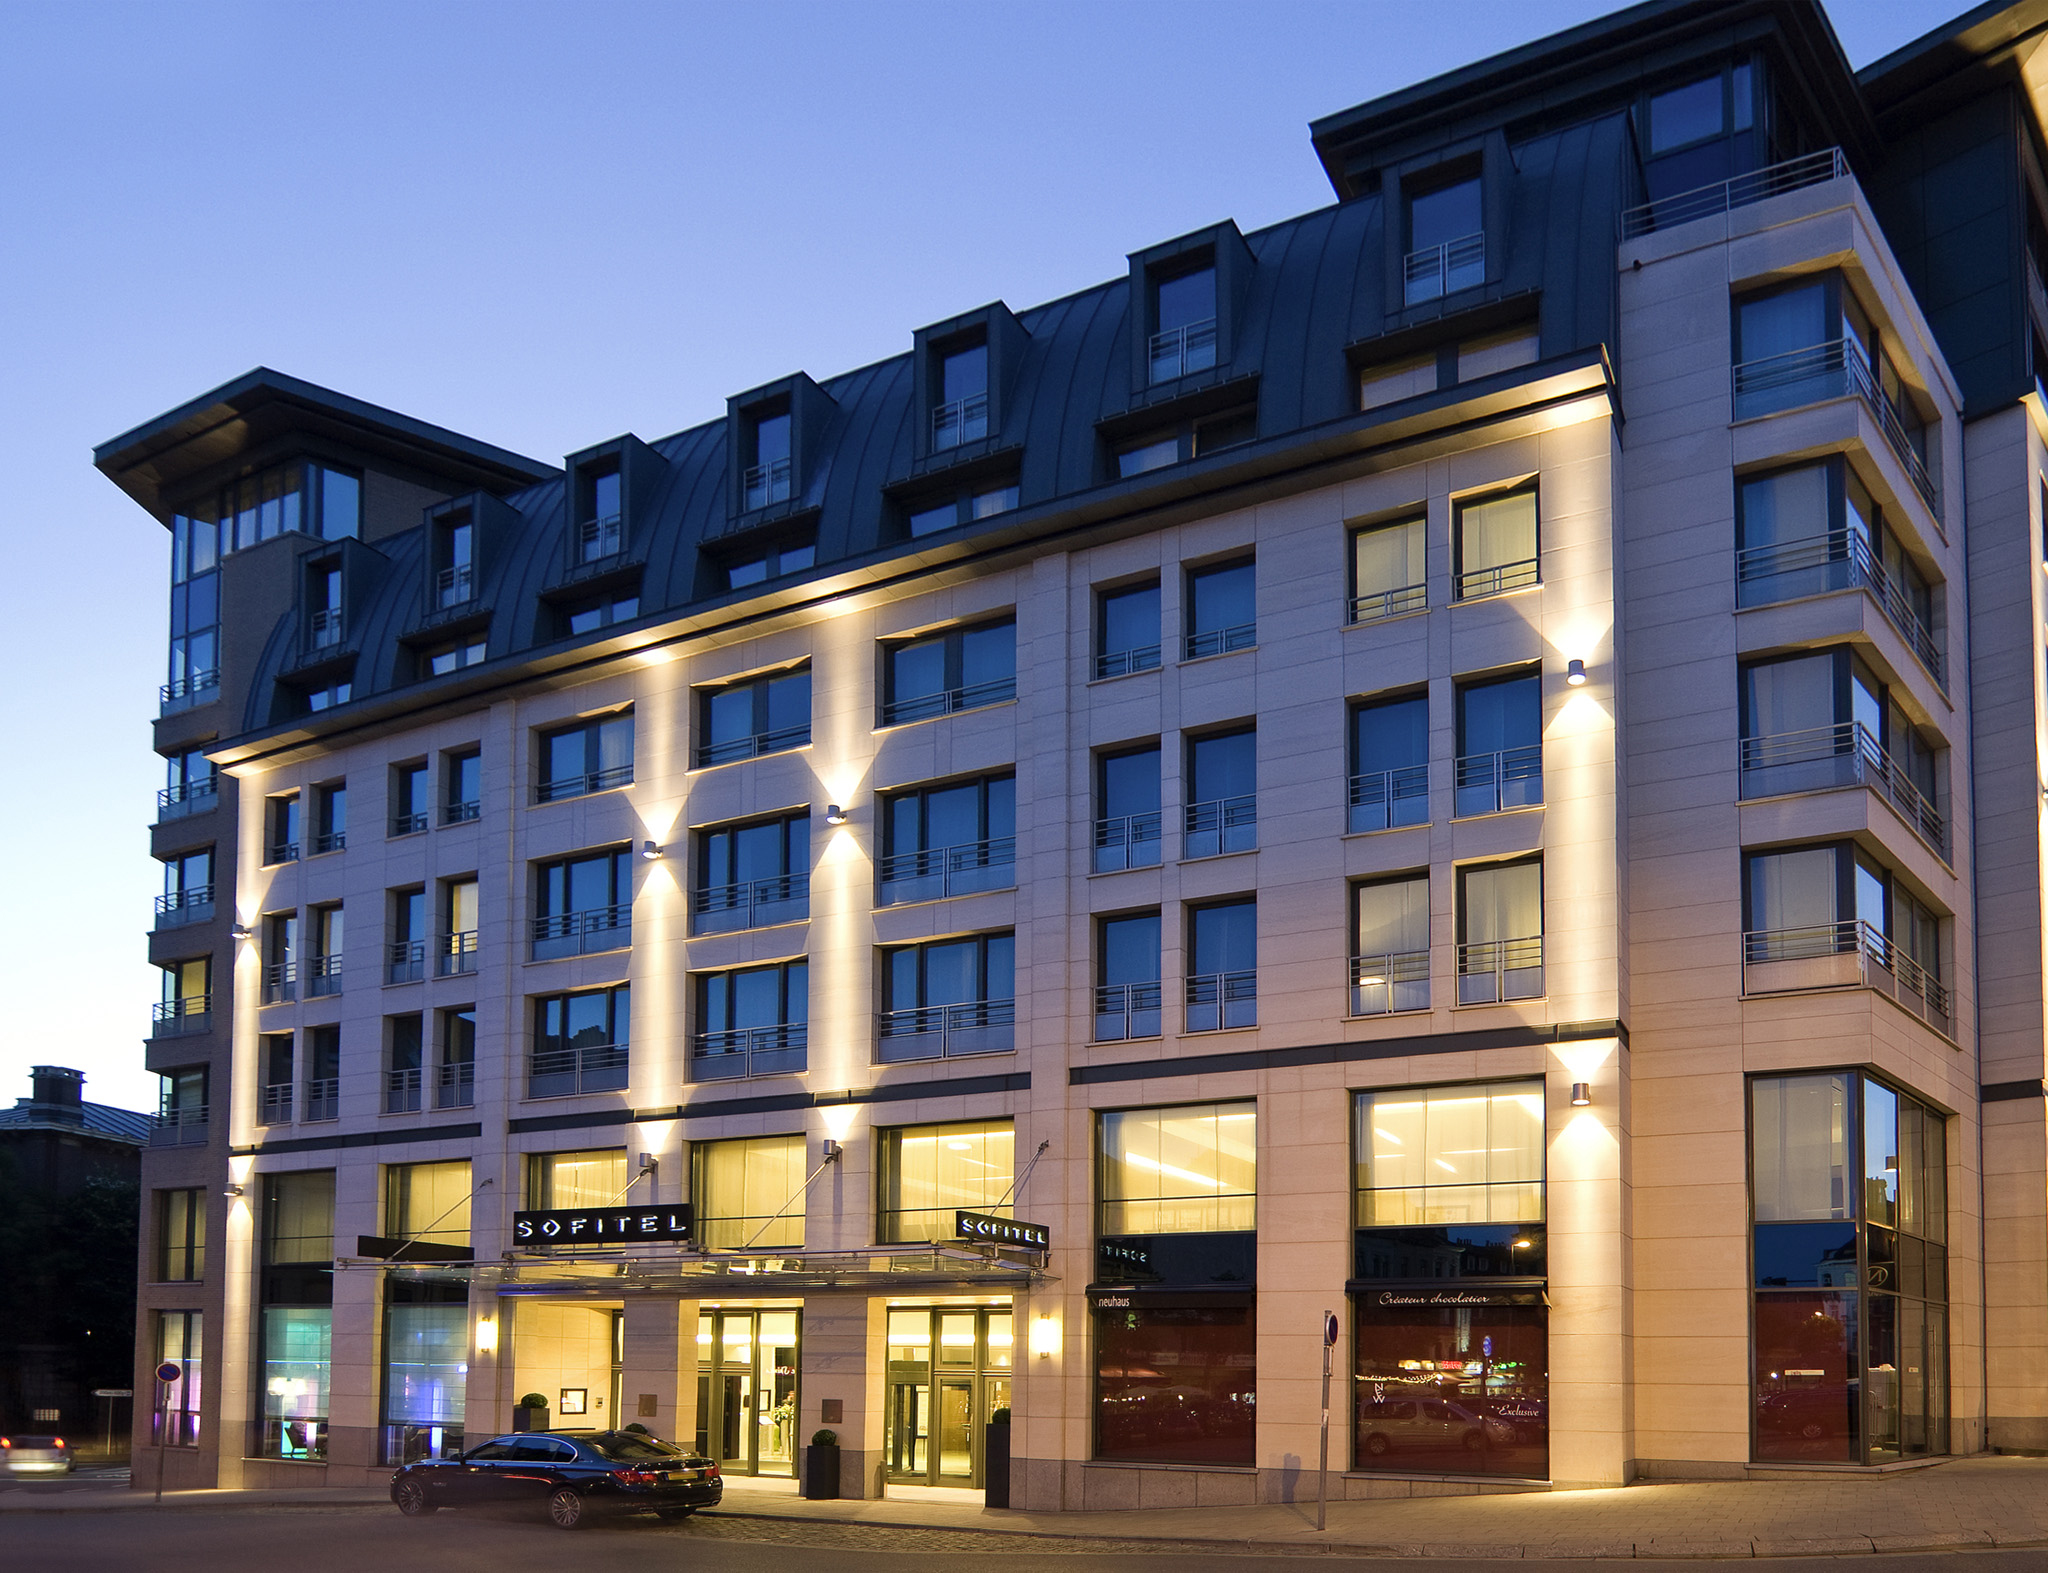 Hotel a brussels sofitel brussels europe